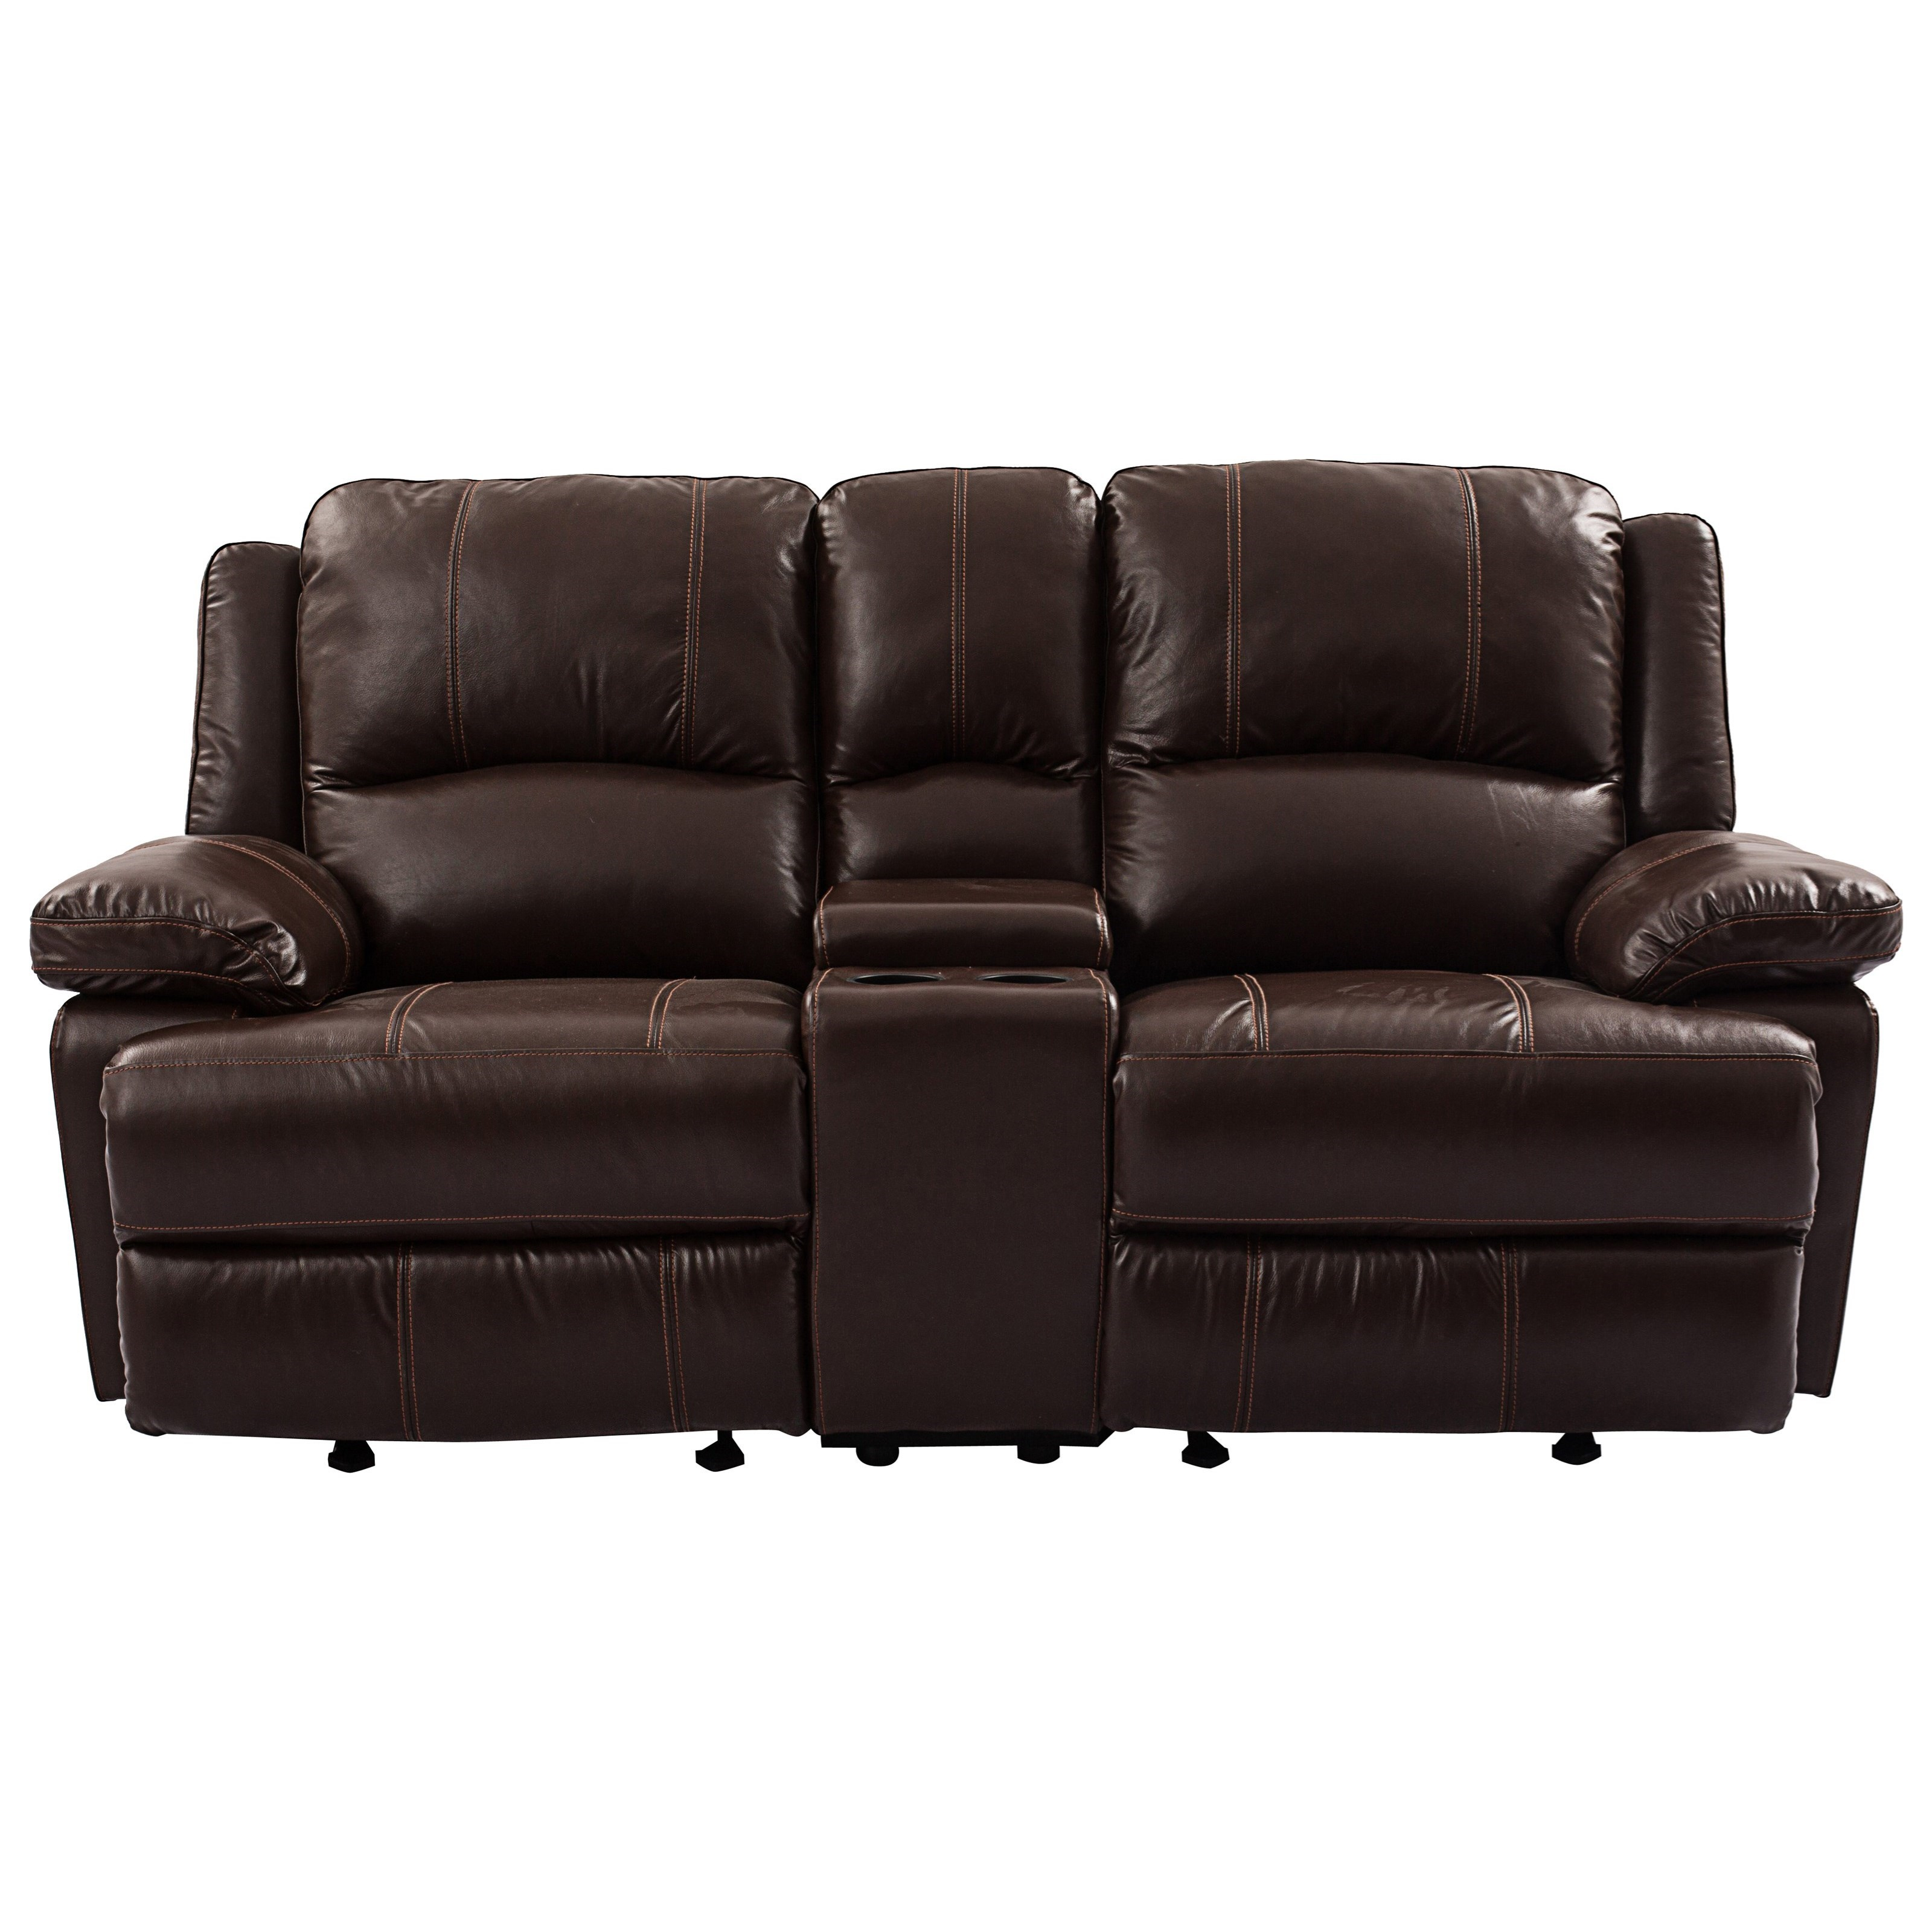 Cheers Sofa 9863 Reclining Loveseat with Console Royal Furniture